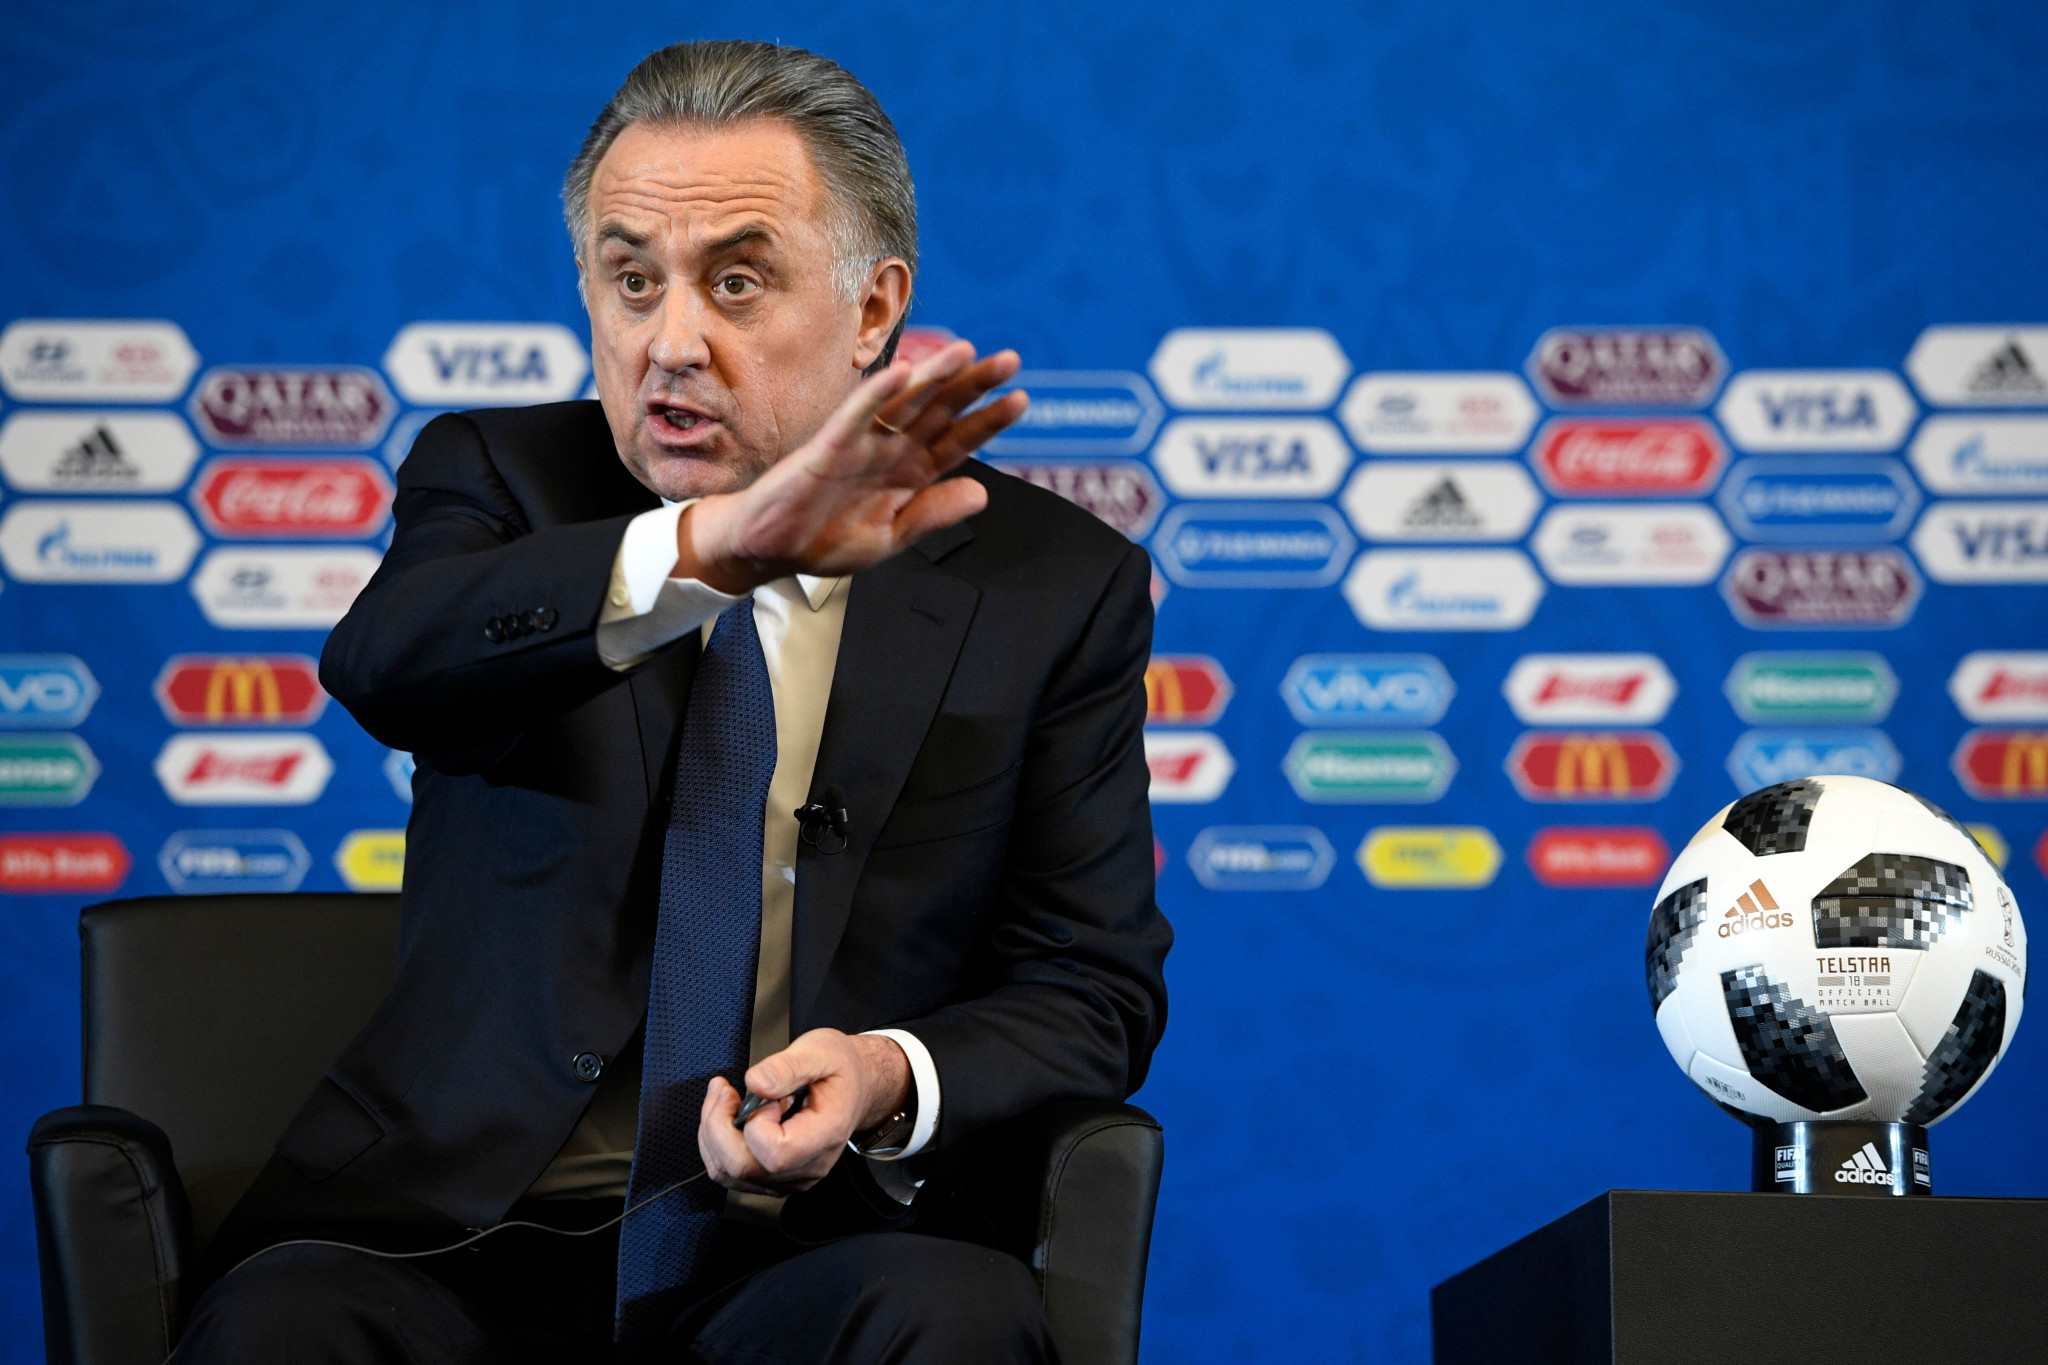 FIFA have claimed there is no danger of Vitaly Mutko being removed as head of the Organising Committee for Russia 2018 even after he was banned by the IOC ©Getty Images